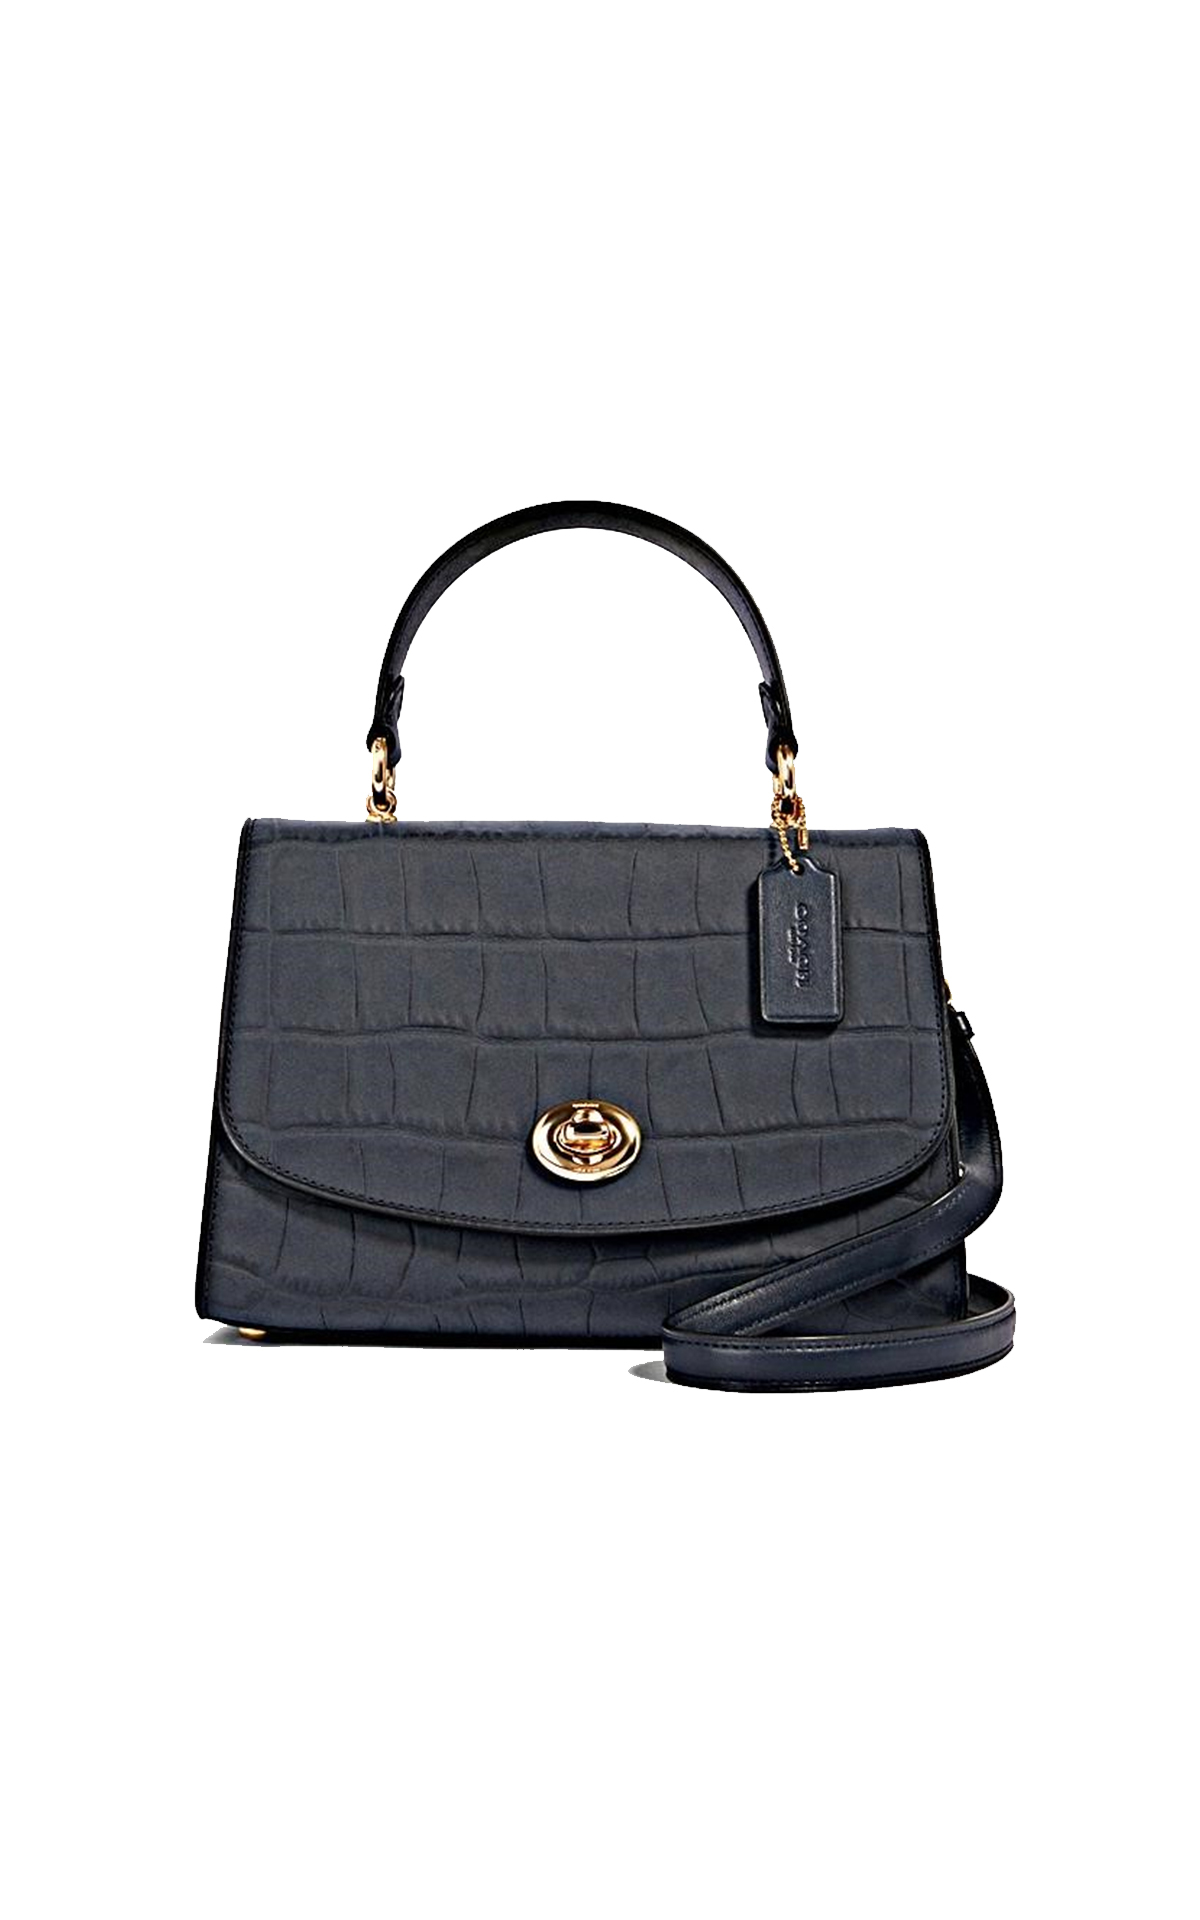 Furla Tilly top handle at The Bicester Village Shopping Collection